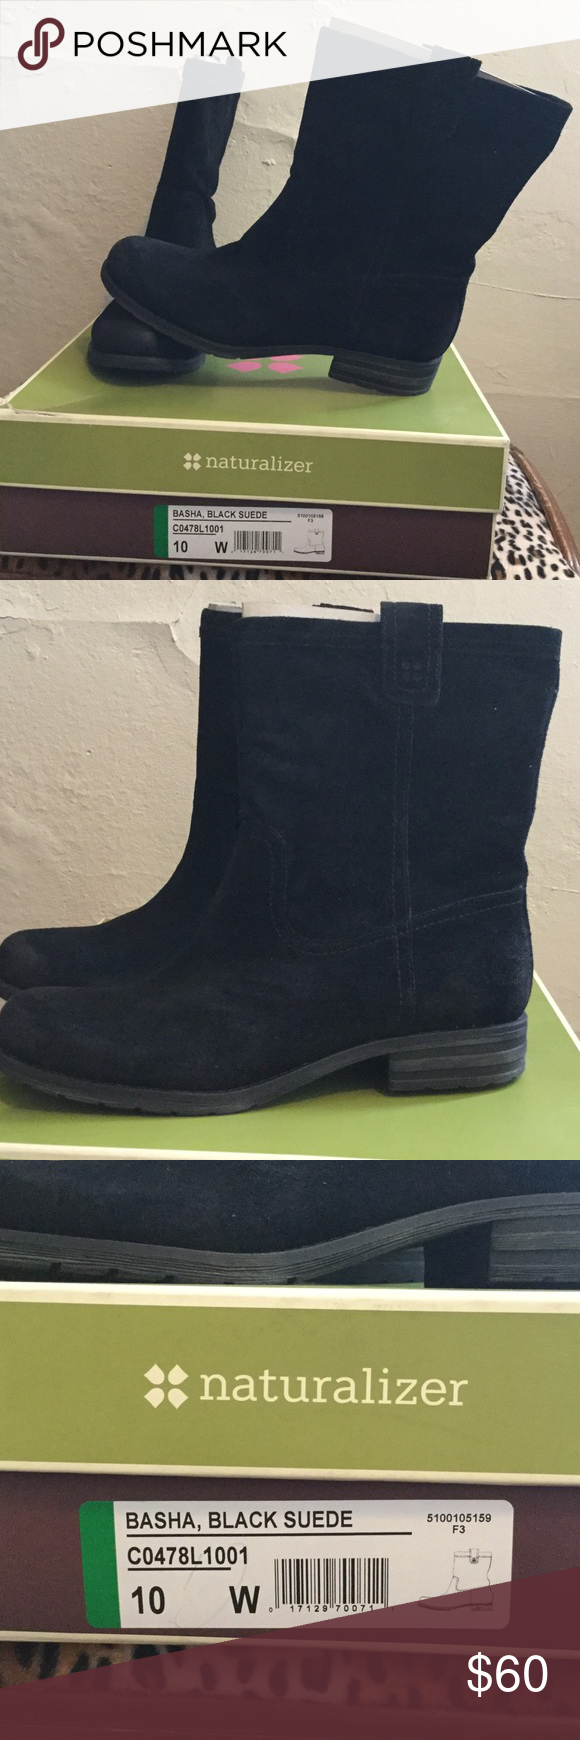 Naturalizer black suede boots Brand new still in box. Womens size 10W. Naturalizer Shoes Winter & Rain Boots